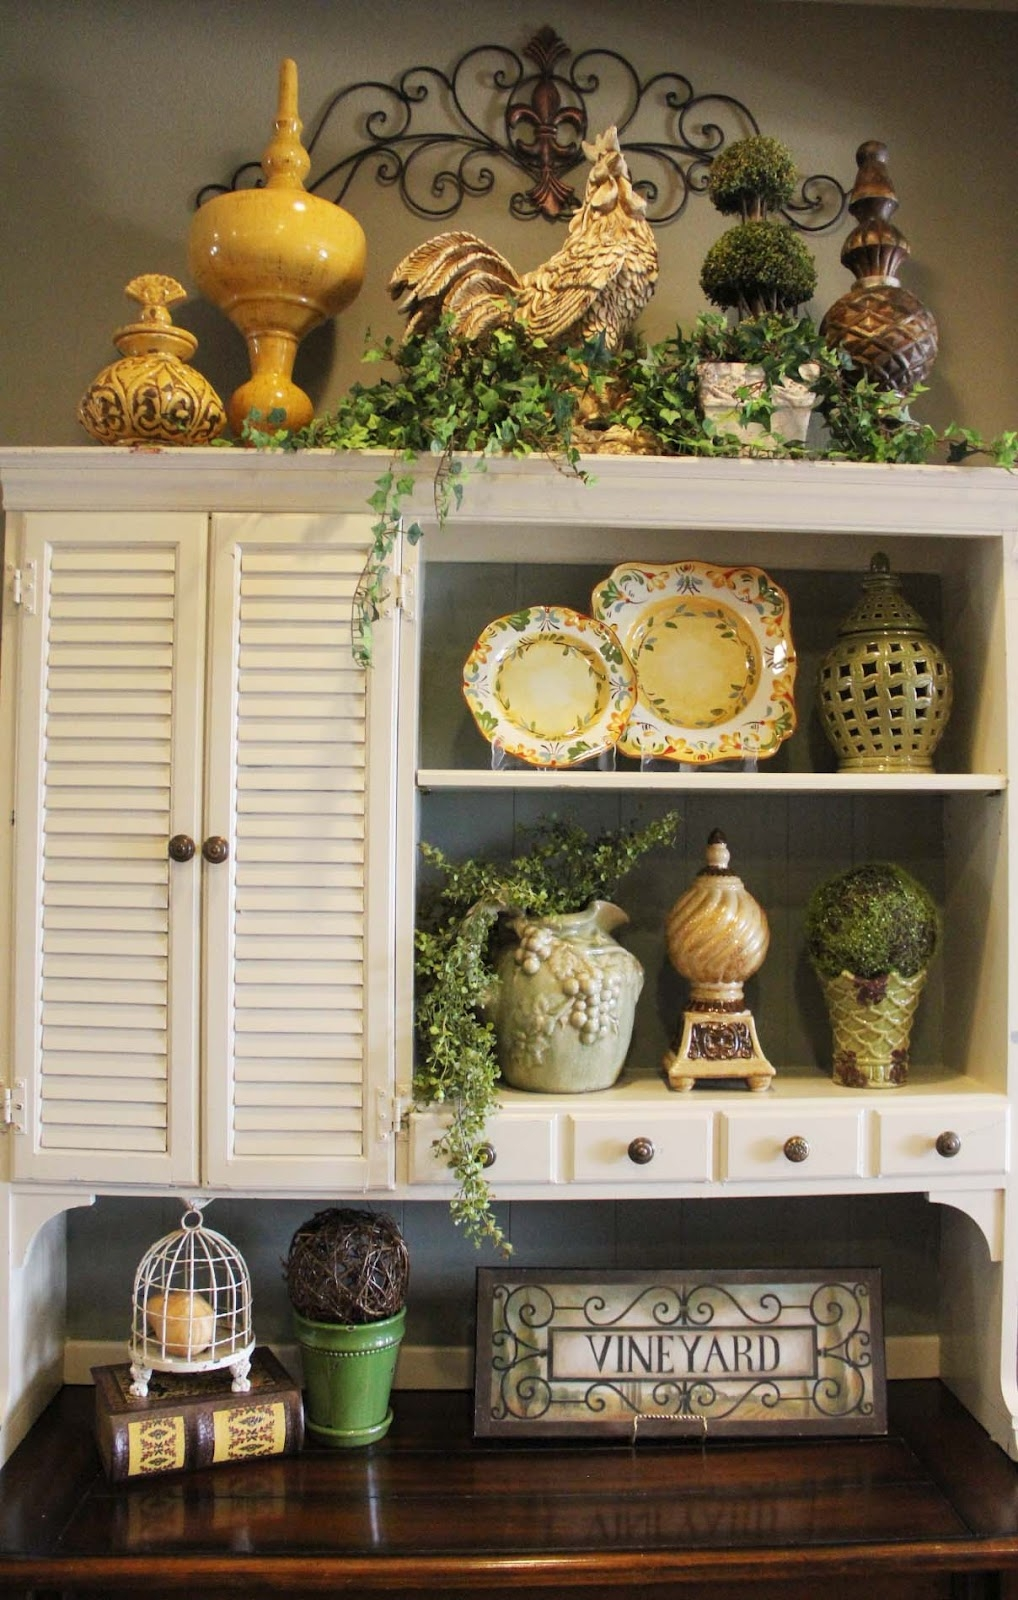 Decorating Above Kitchen Cabinets With Greenery